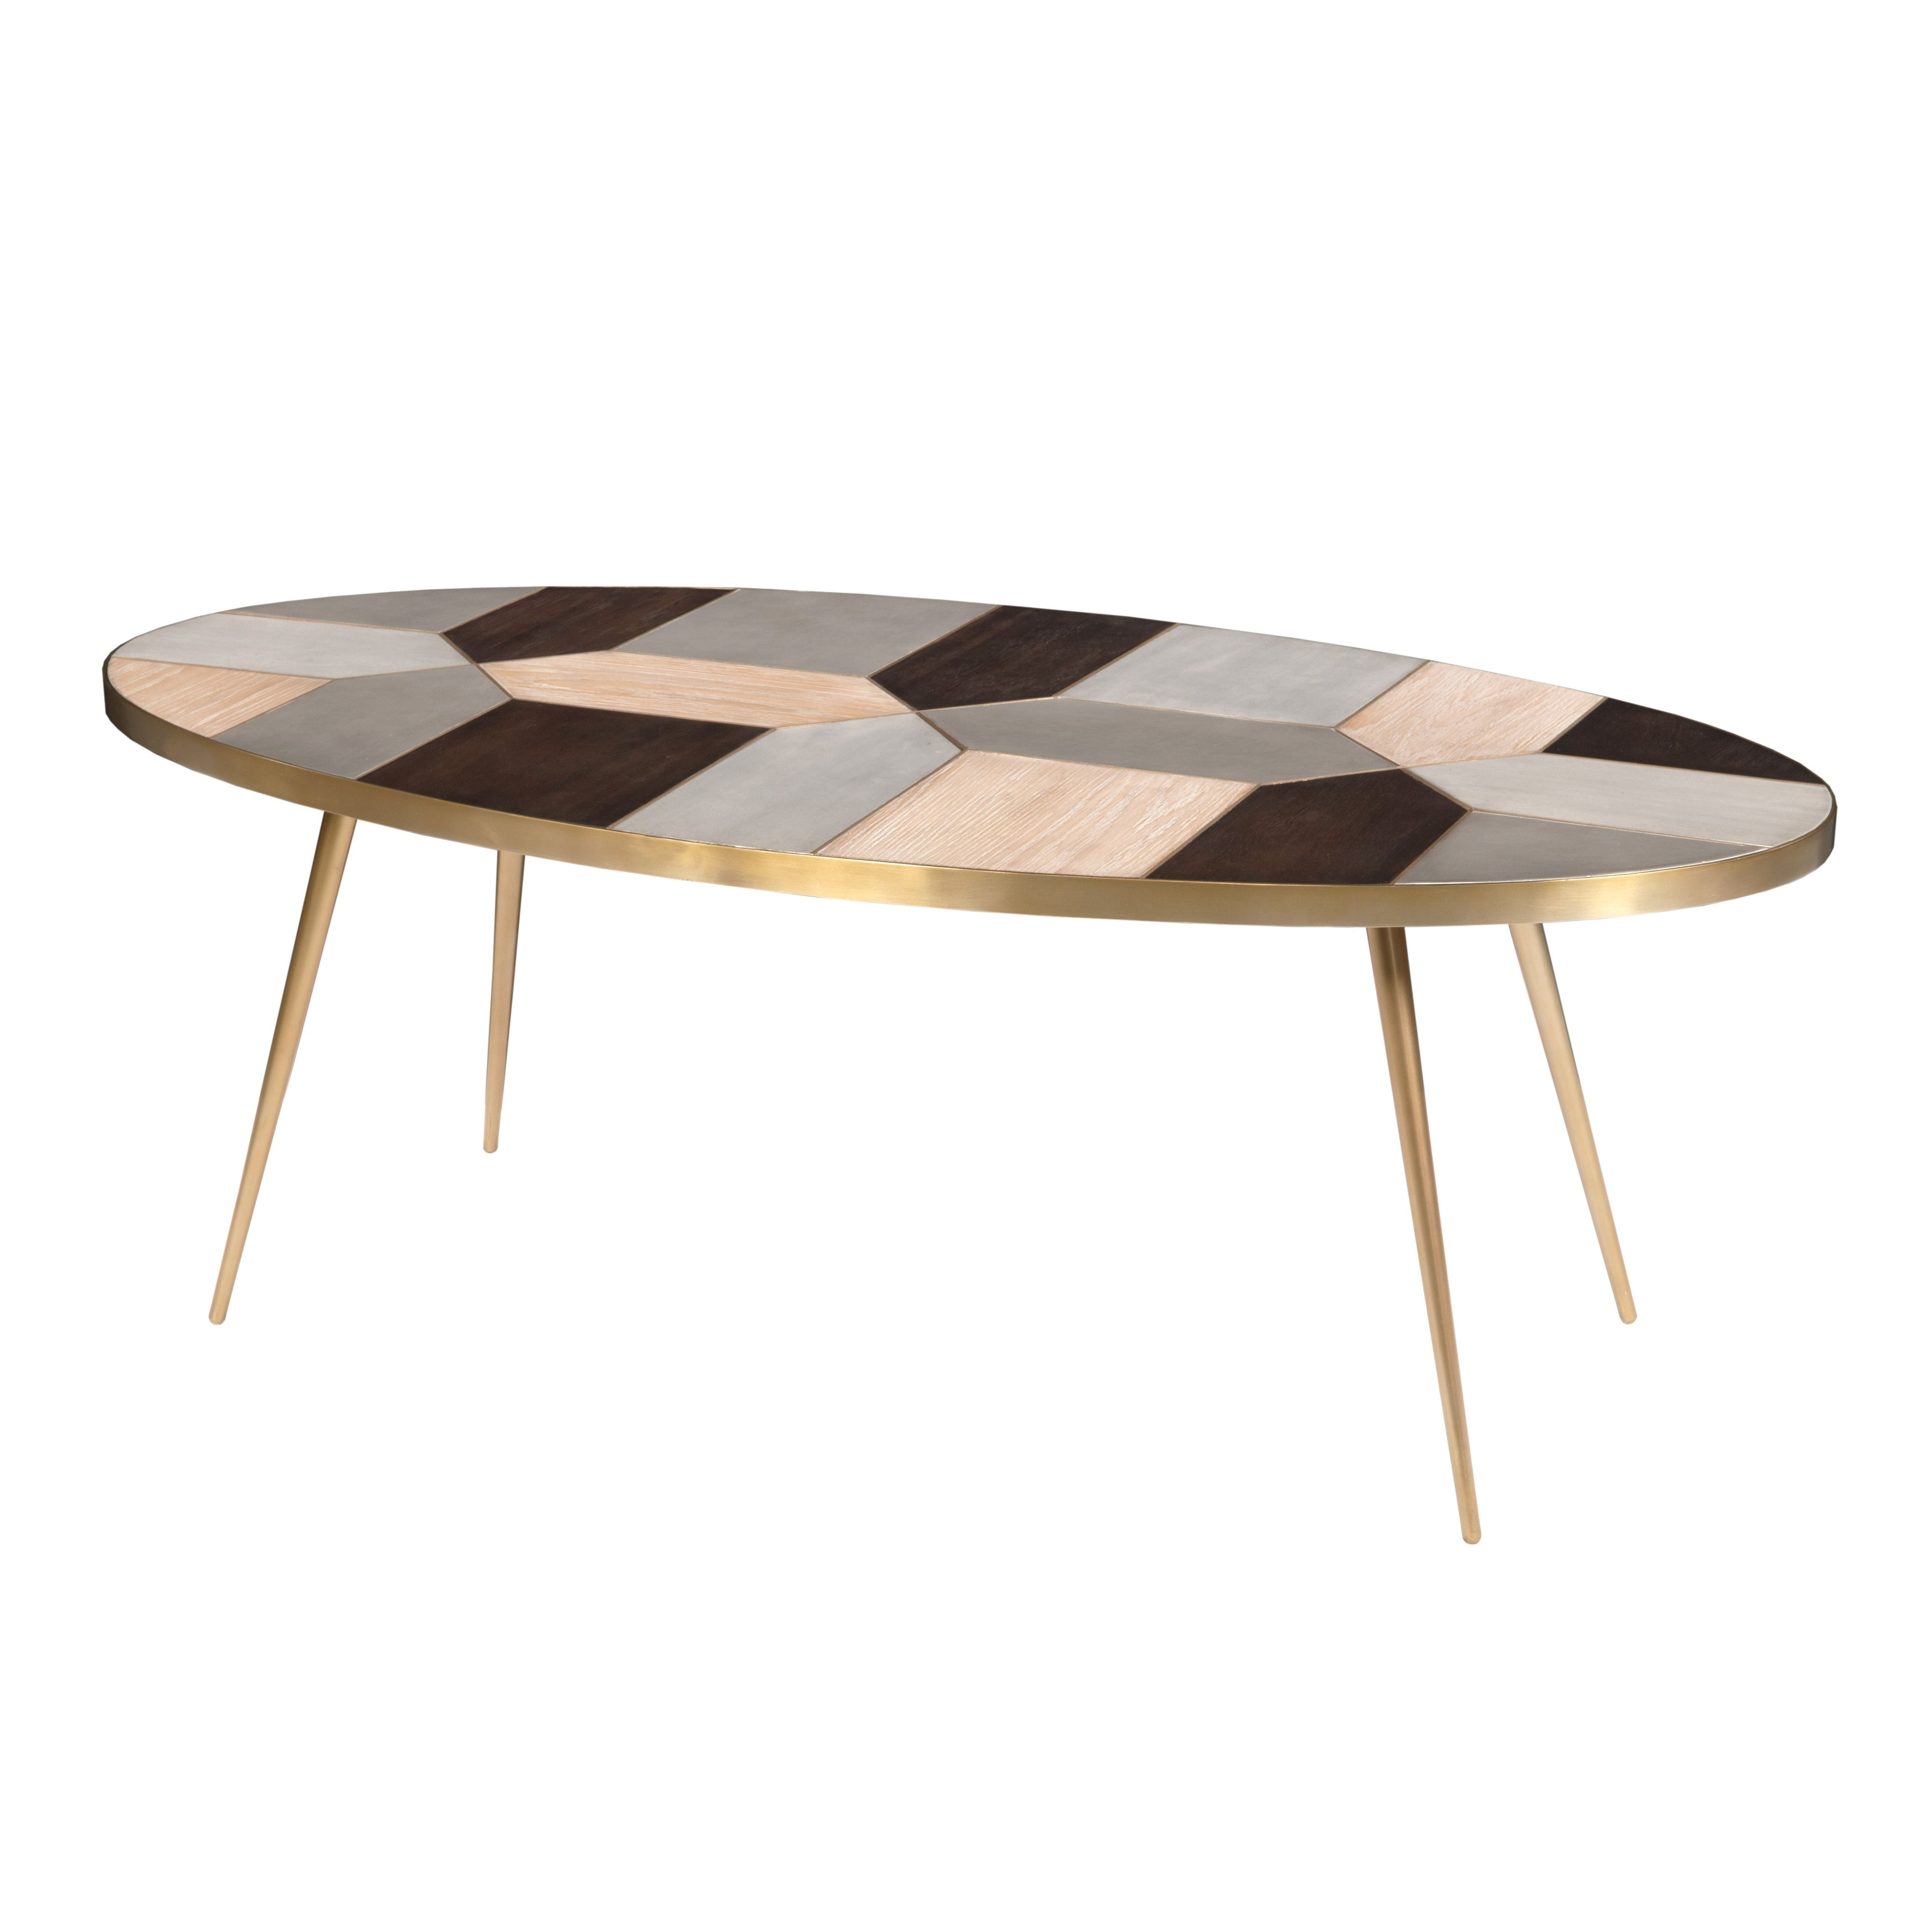 Living By Christiane Lemieux Modus Mosaic Coffee Table   House Of Fraser